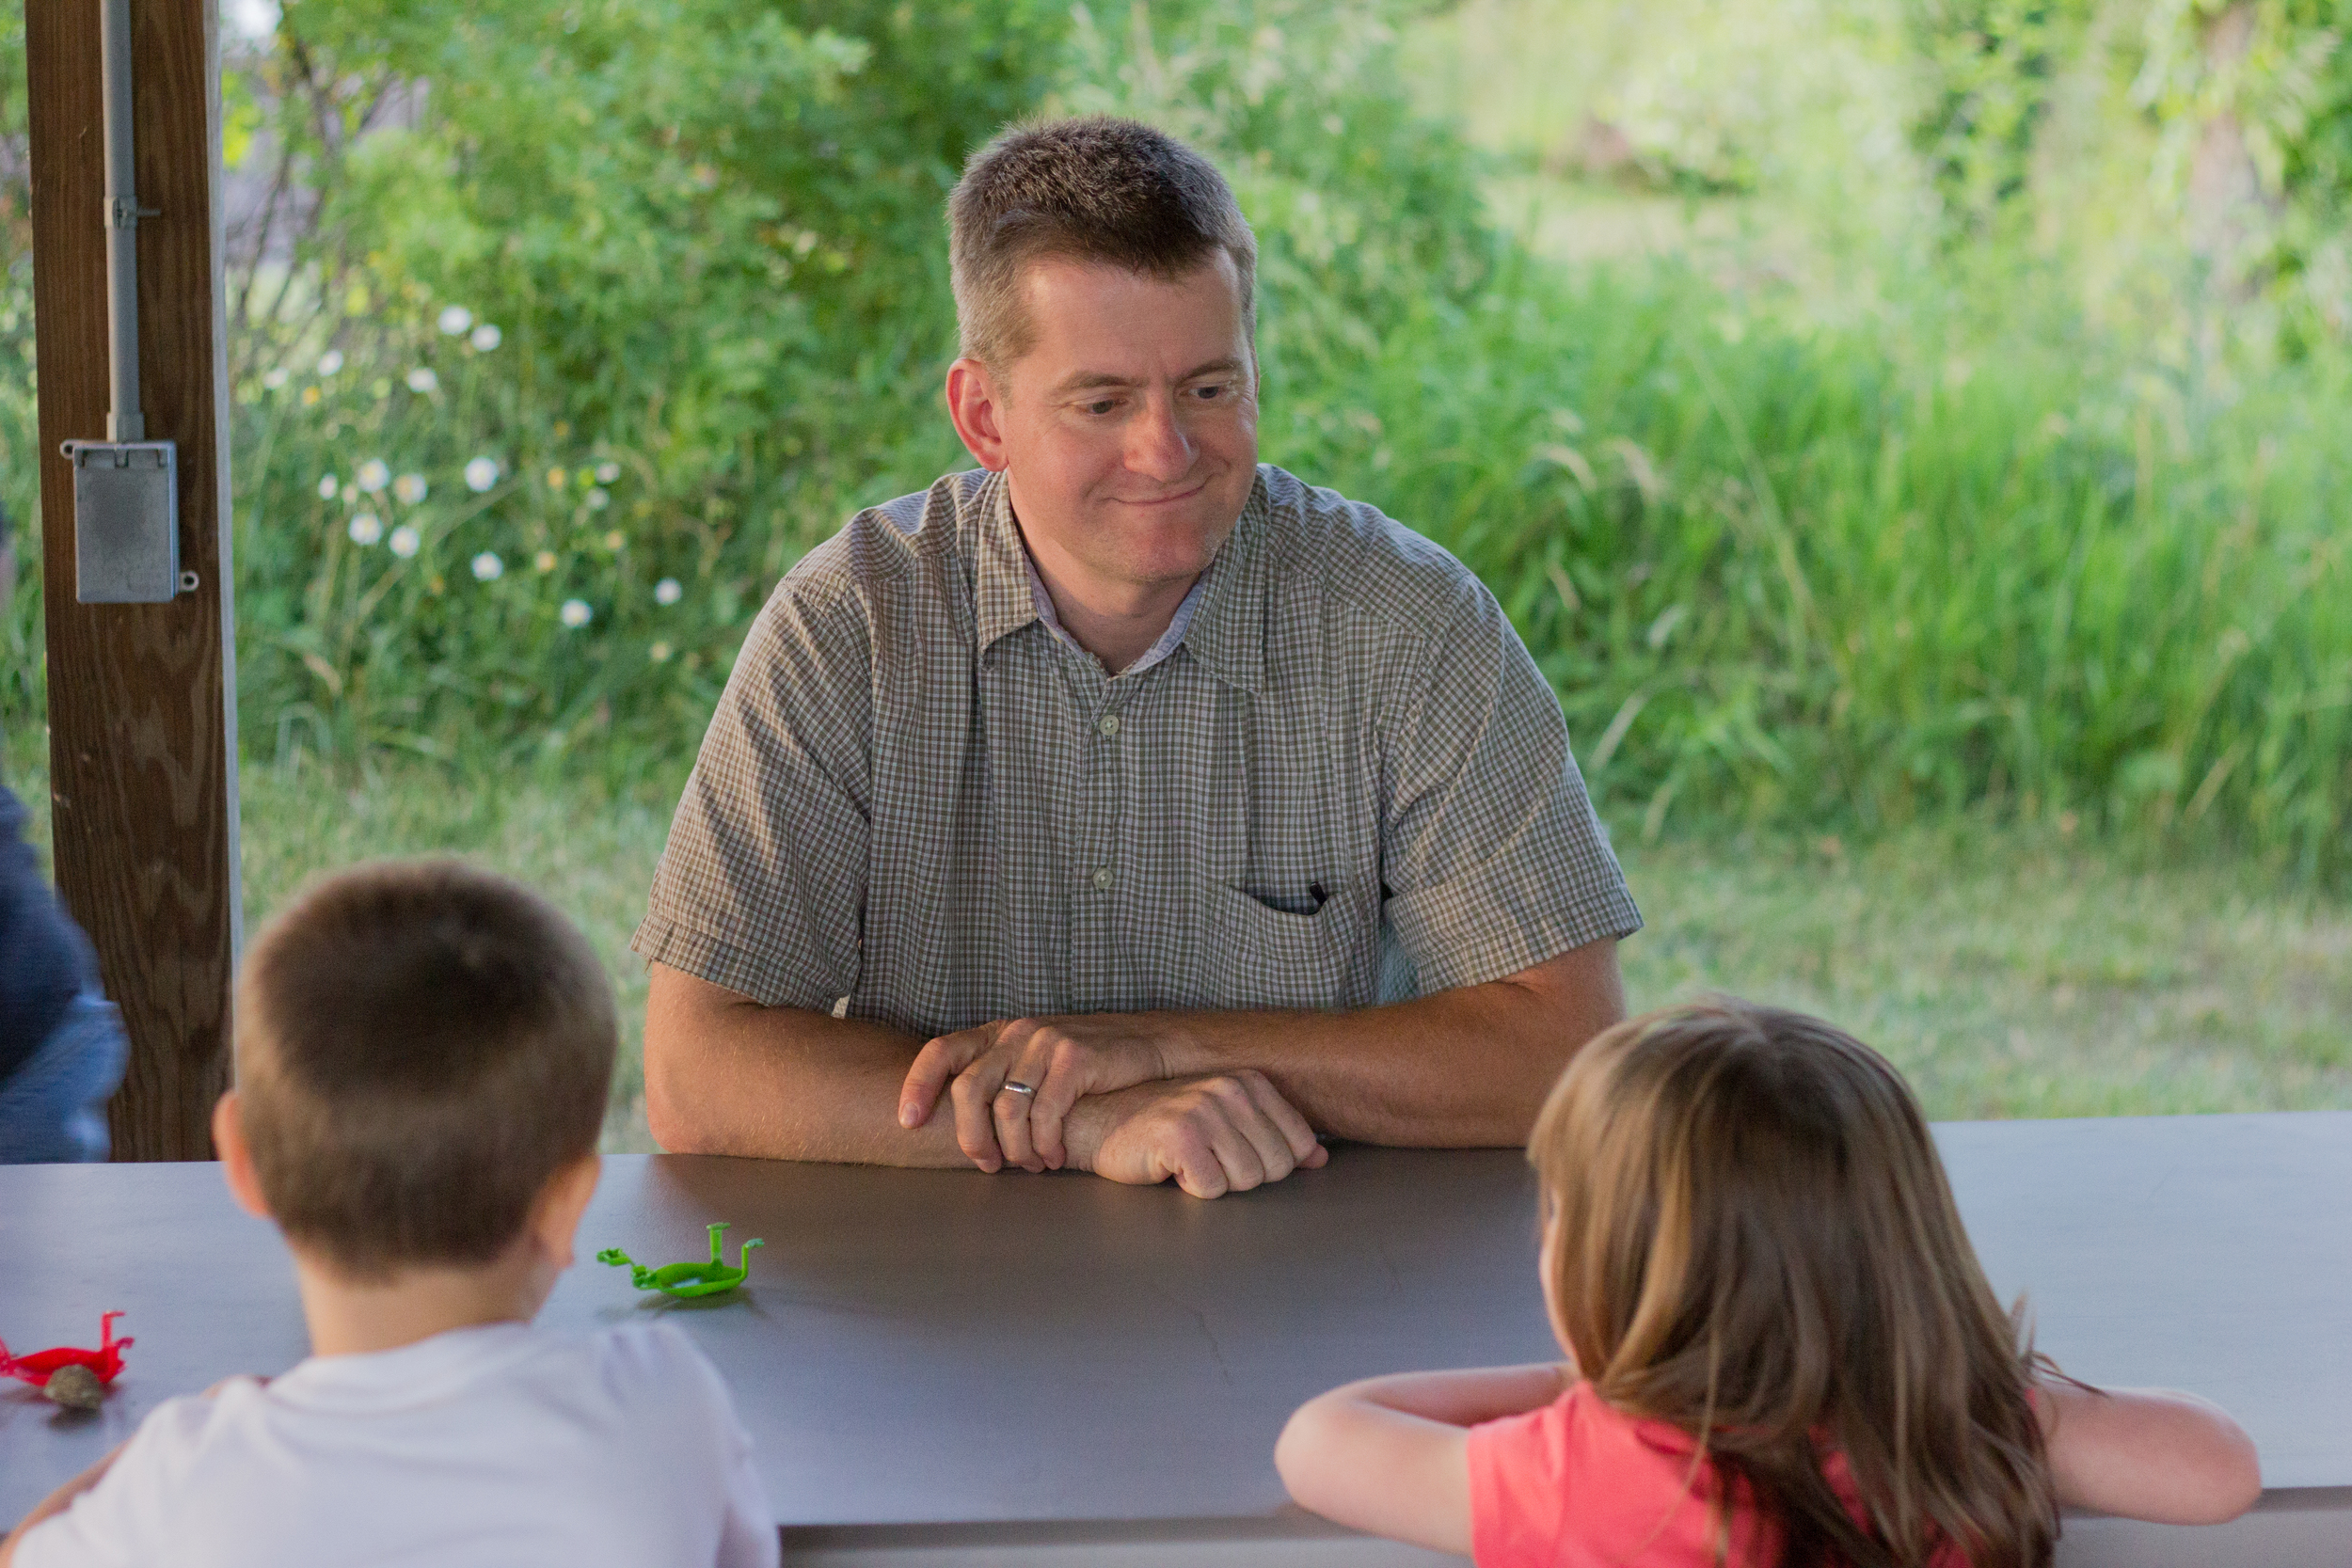 Mark Hall (Deacon) talking to children during a VBS activity